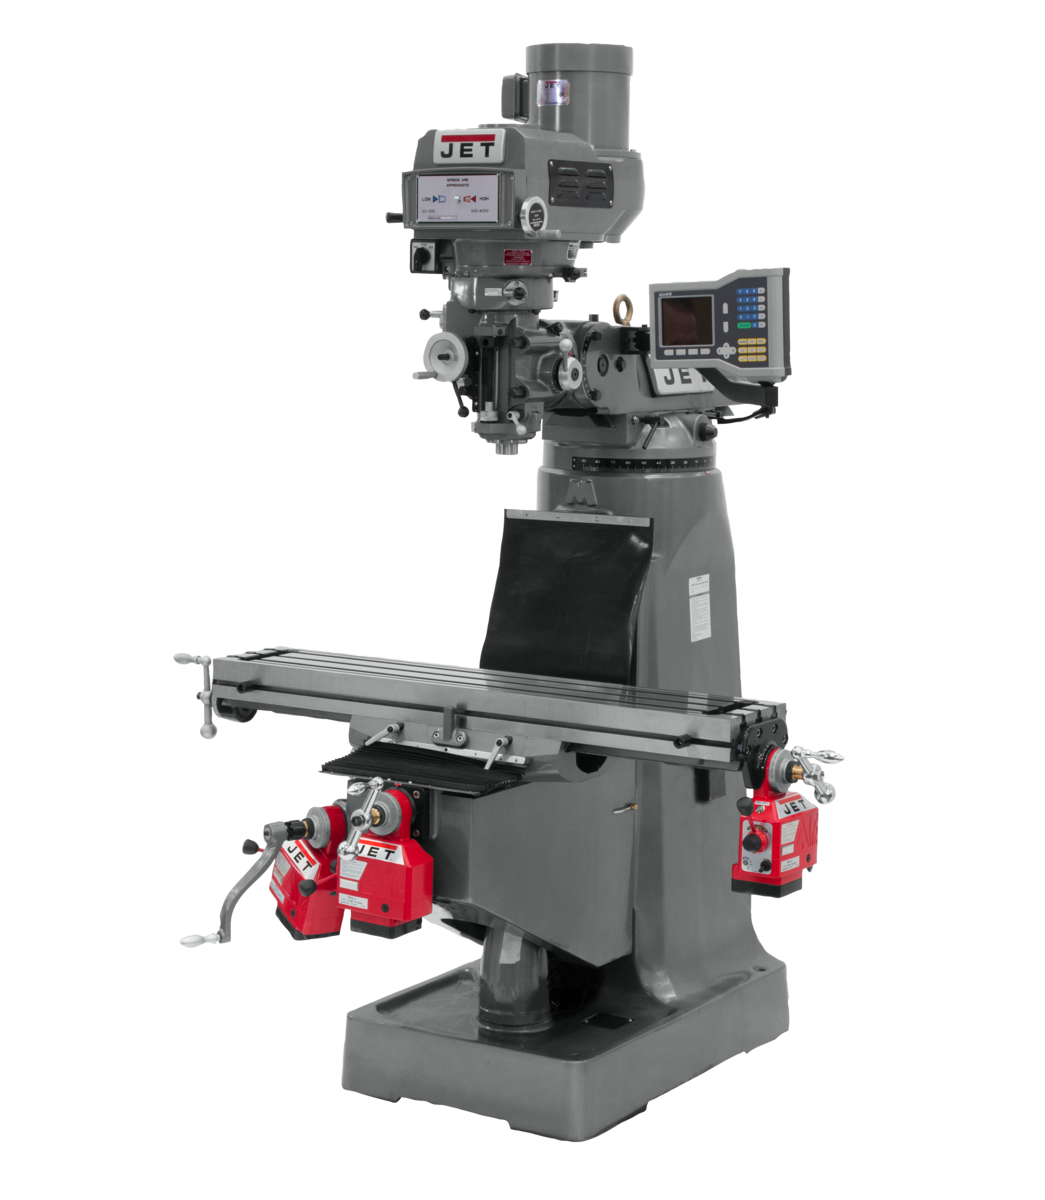 JTM-4VS Mill With 3-Axis ACU-RITE 203 DRO (Knee) With X, Y and Z-Axis Powerfeeds